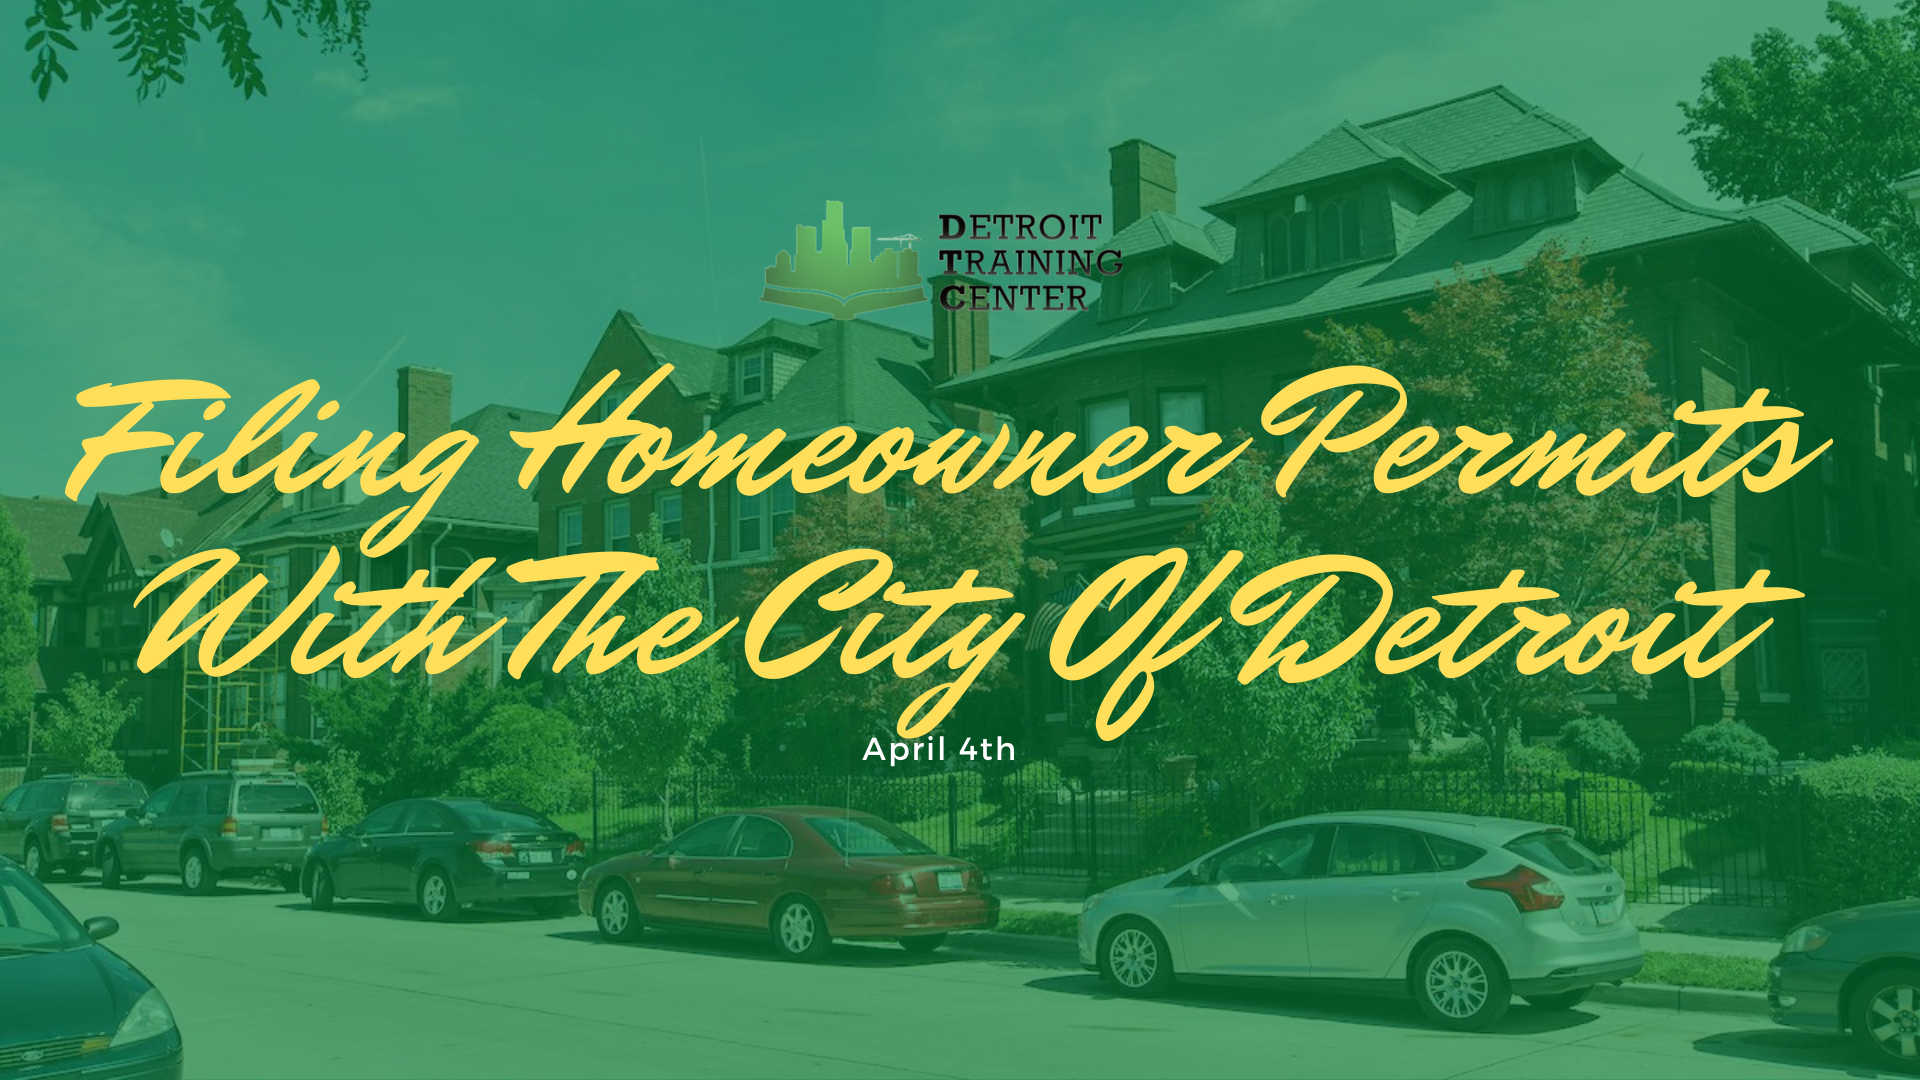 Filing Homeowner Permits With The City Of Detroit